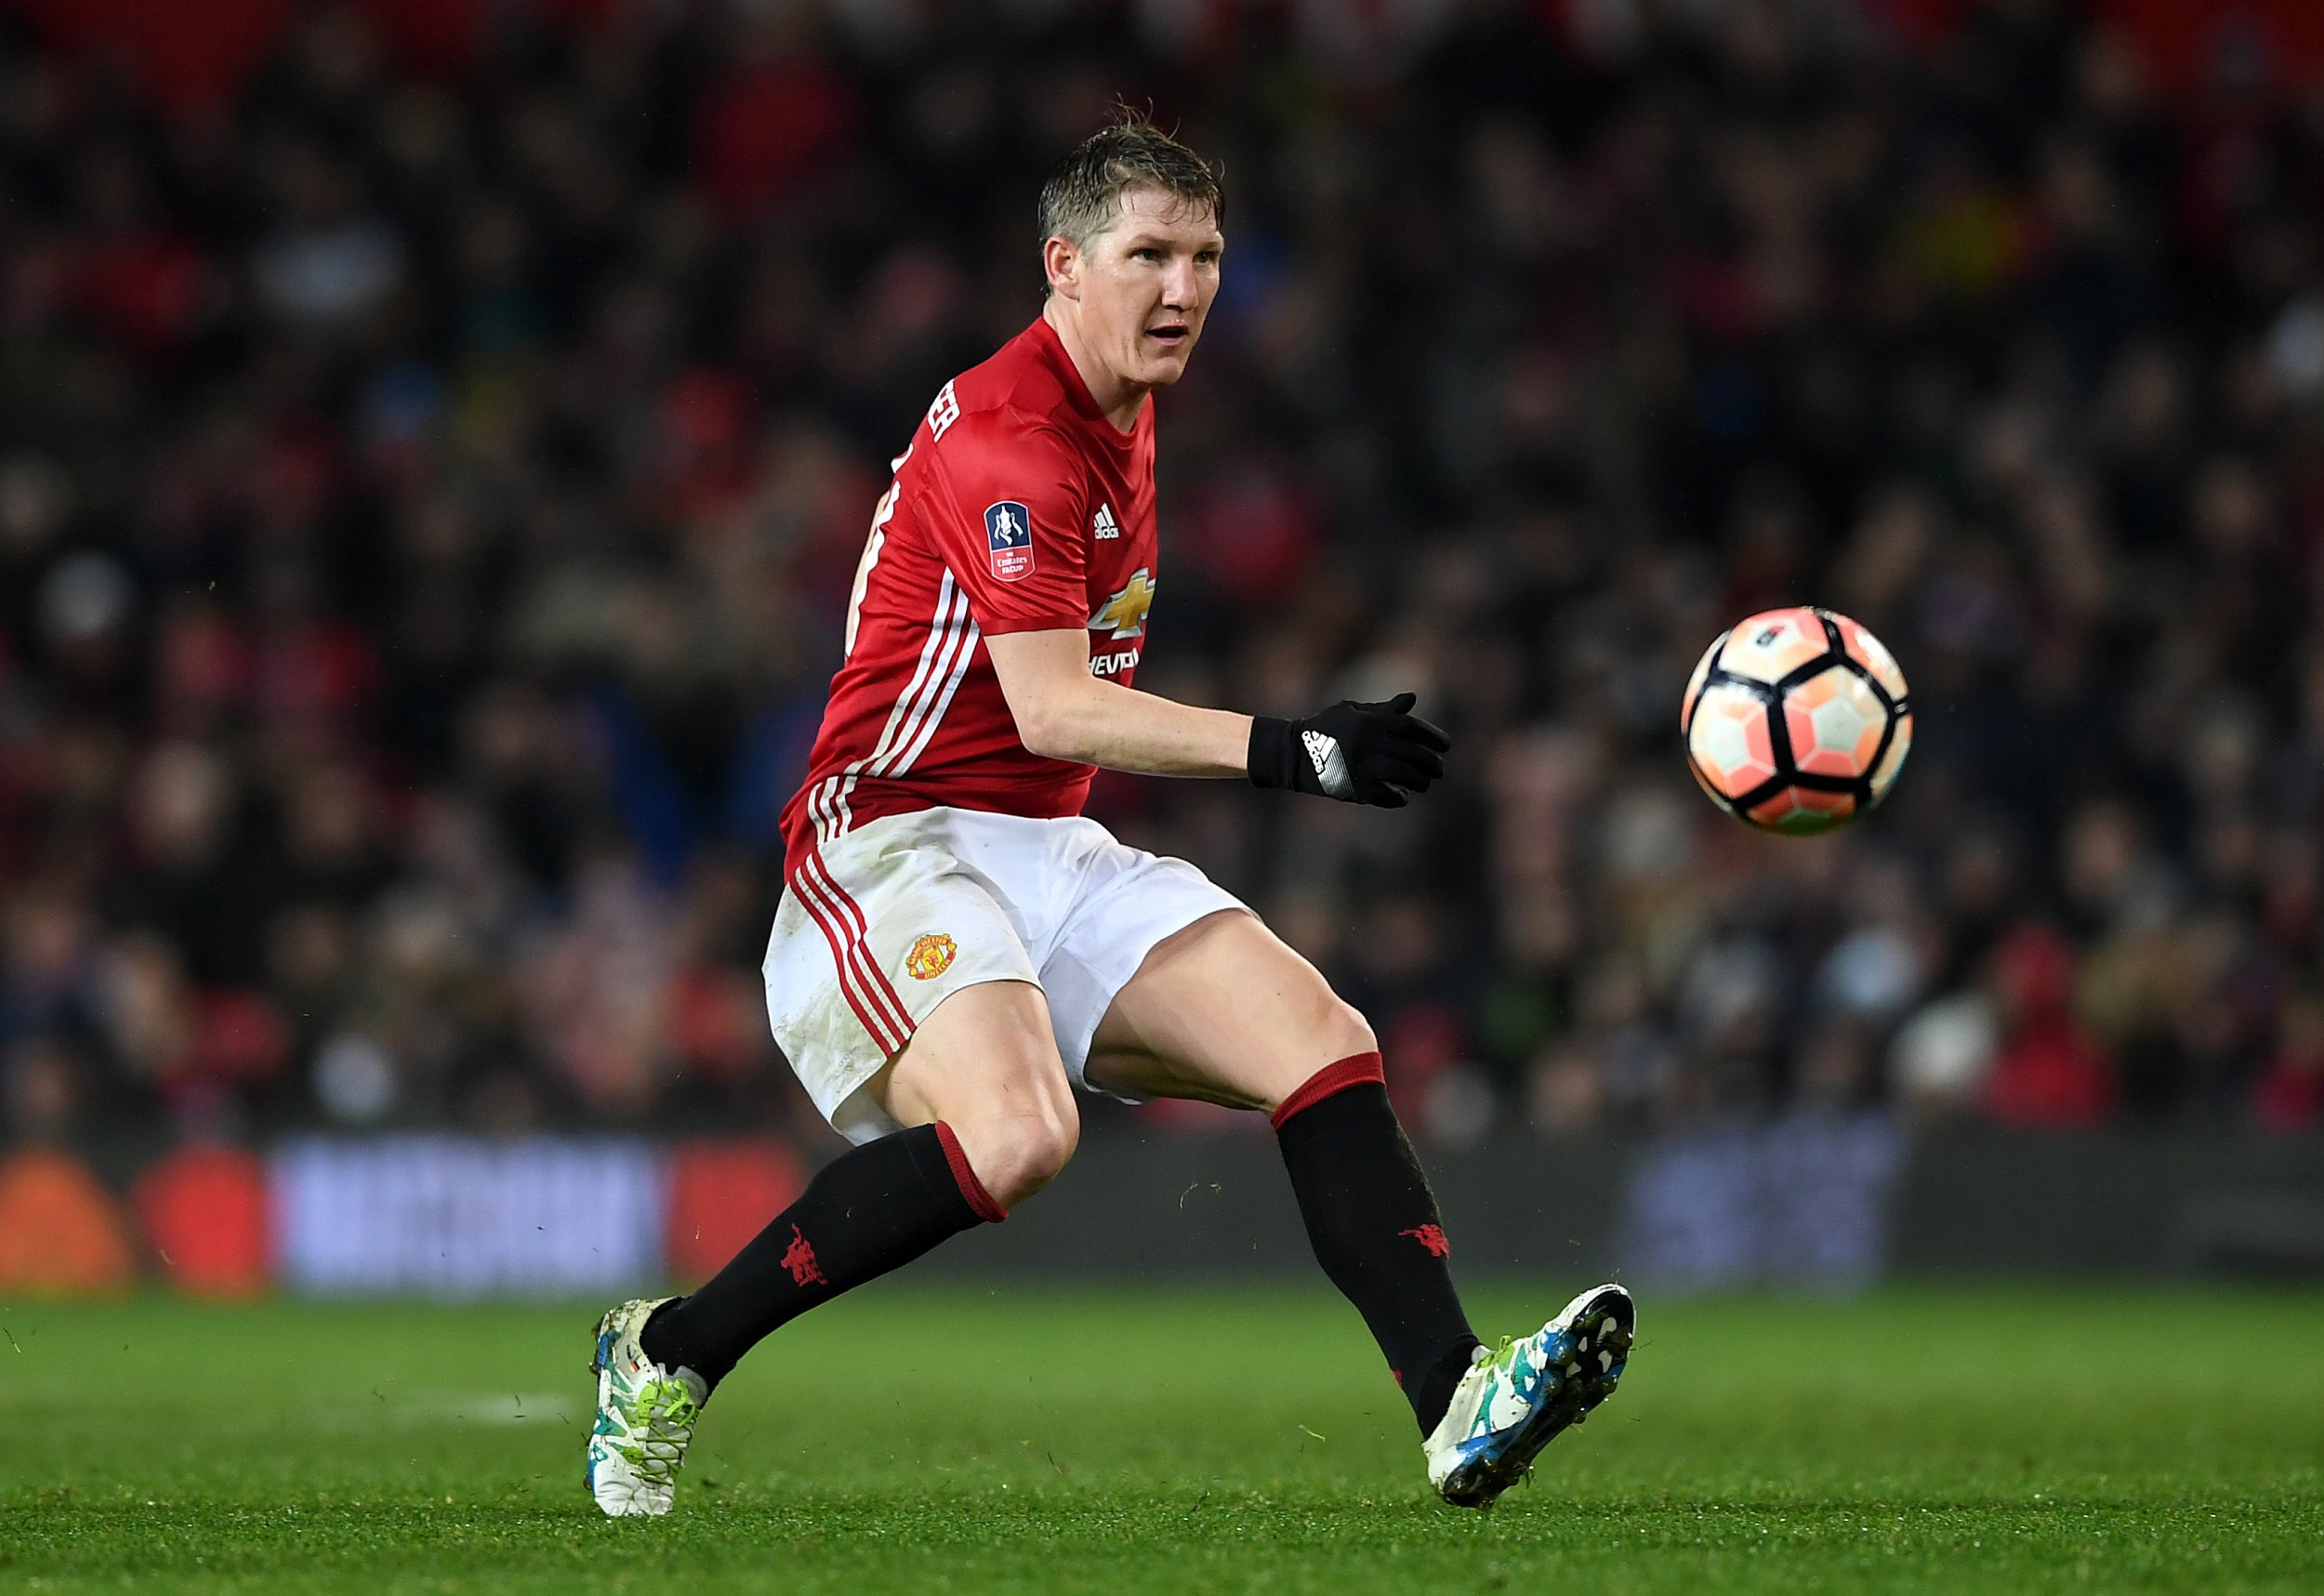 Bastian Schweinsteiger Chicago Fire Reveals New Details of